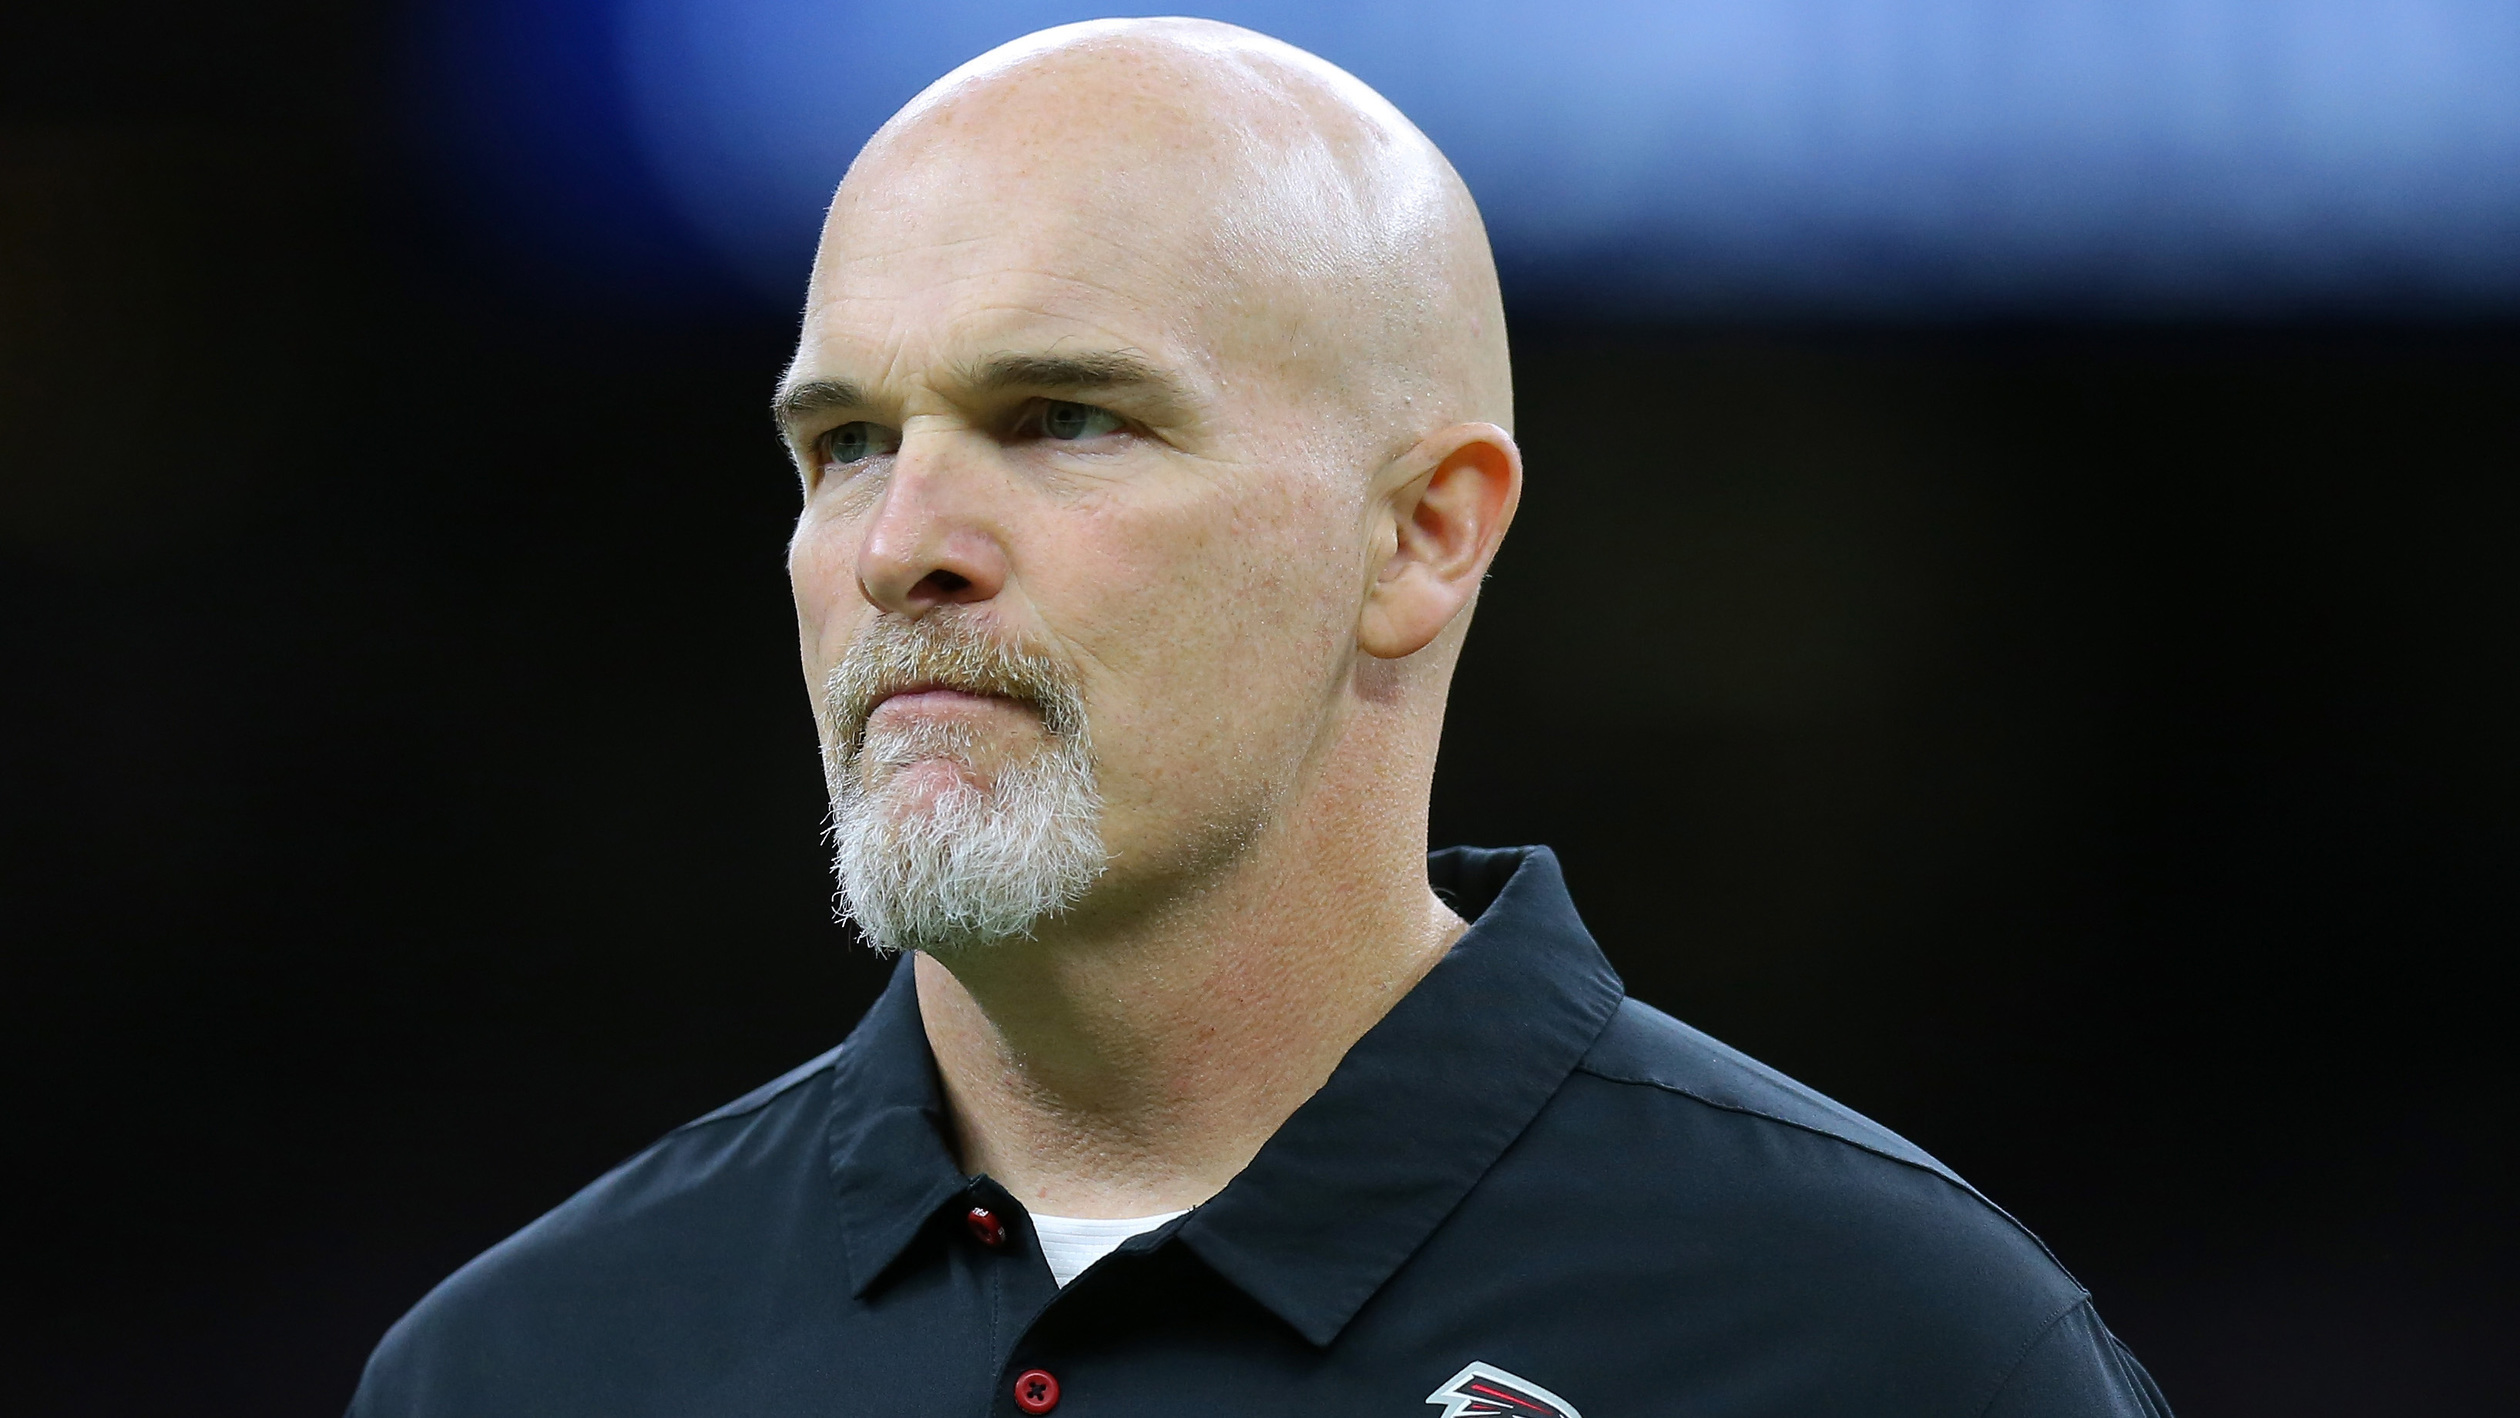 Falcons Dan Quinn Jets Adam Gase May Be First Nfl Coaches To Be Fired Nbc Sports